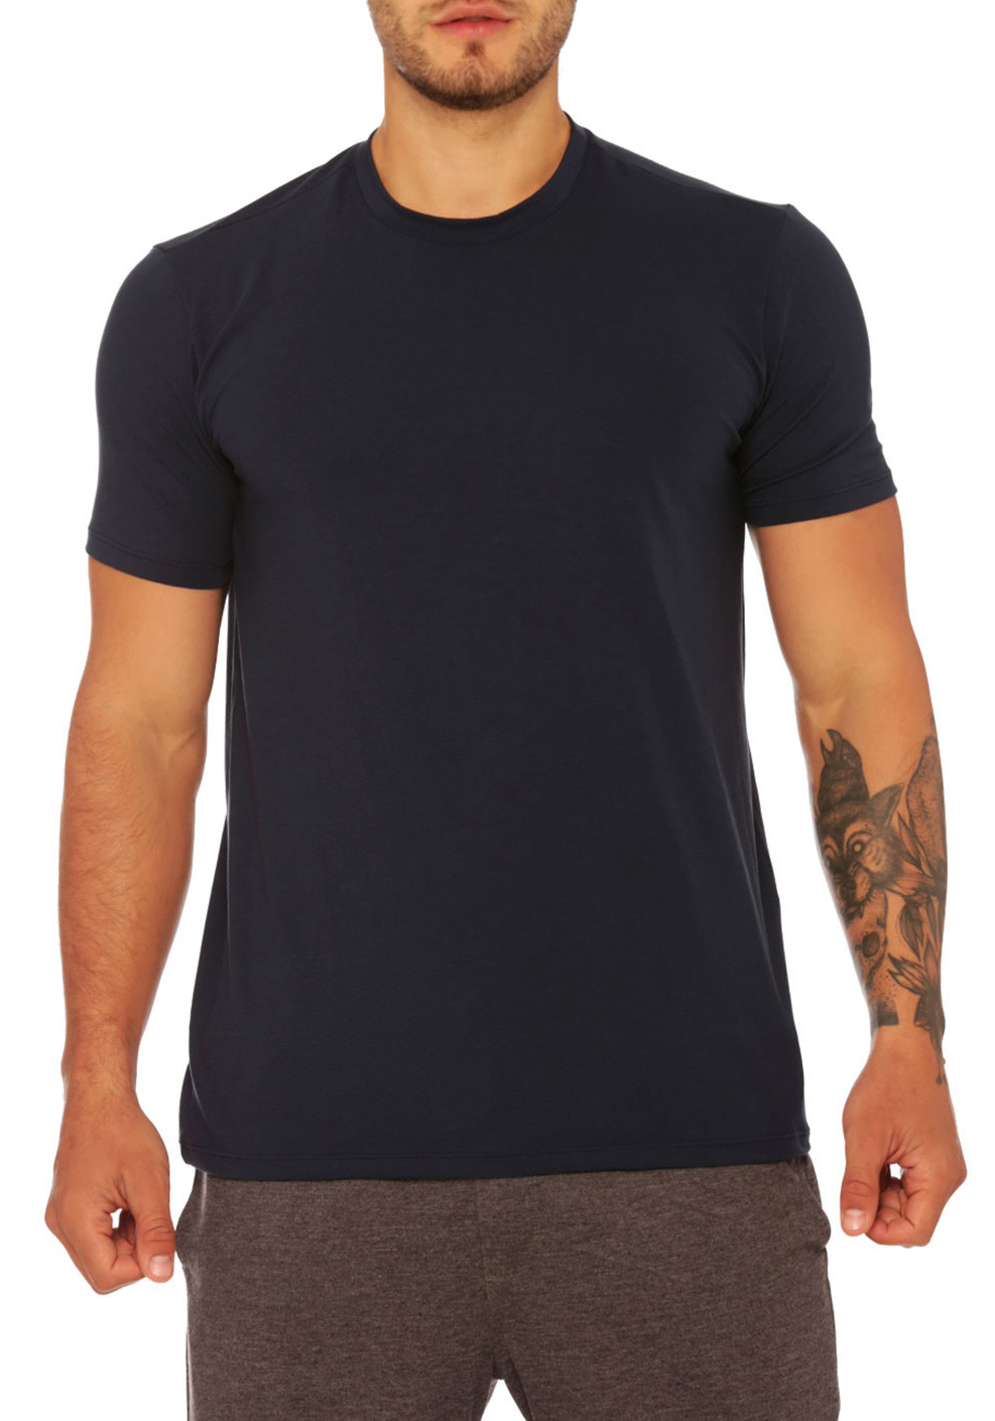 Mundo Unico Comfort Wear T-Shirt | Blue